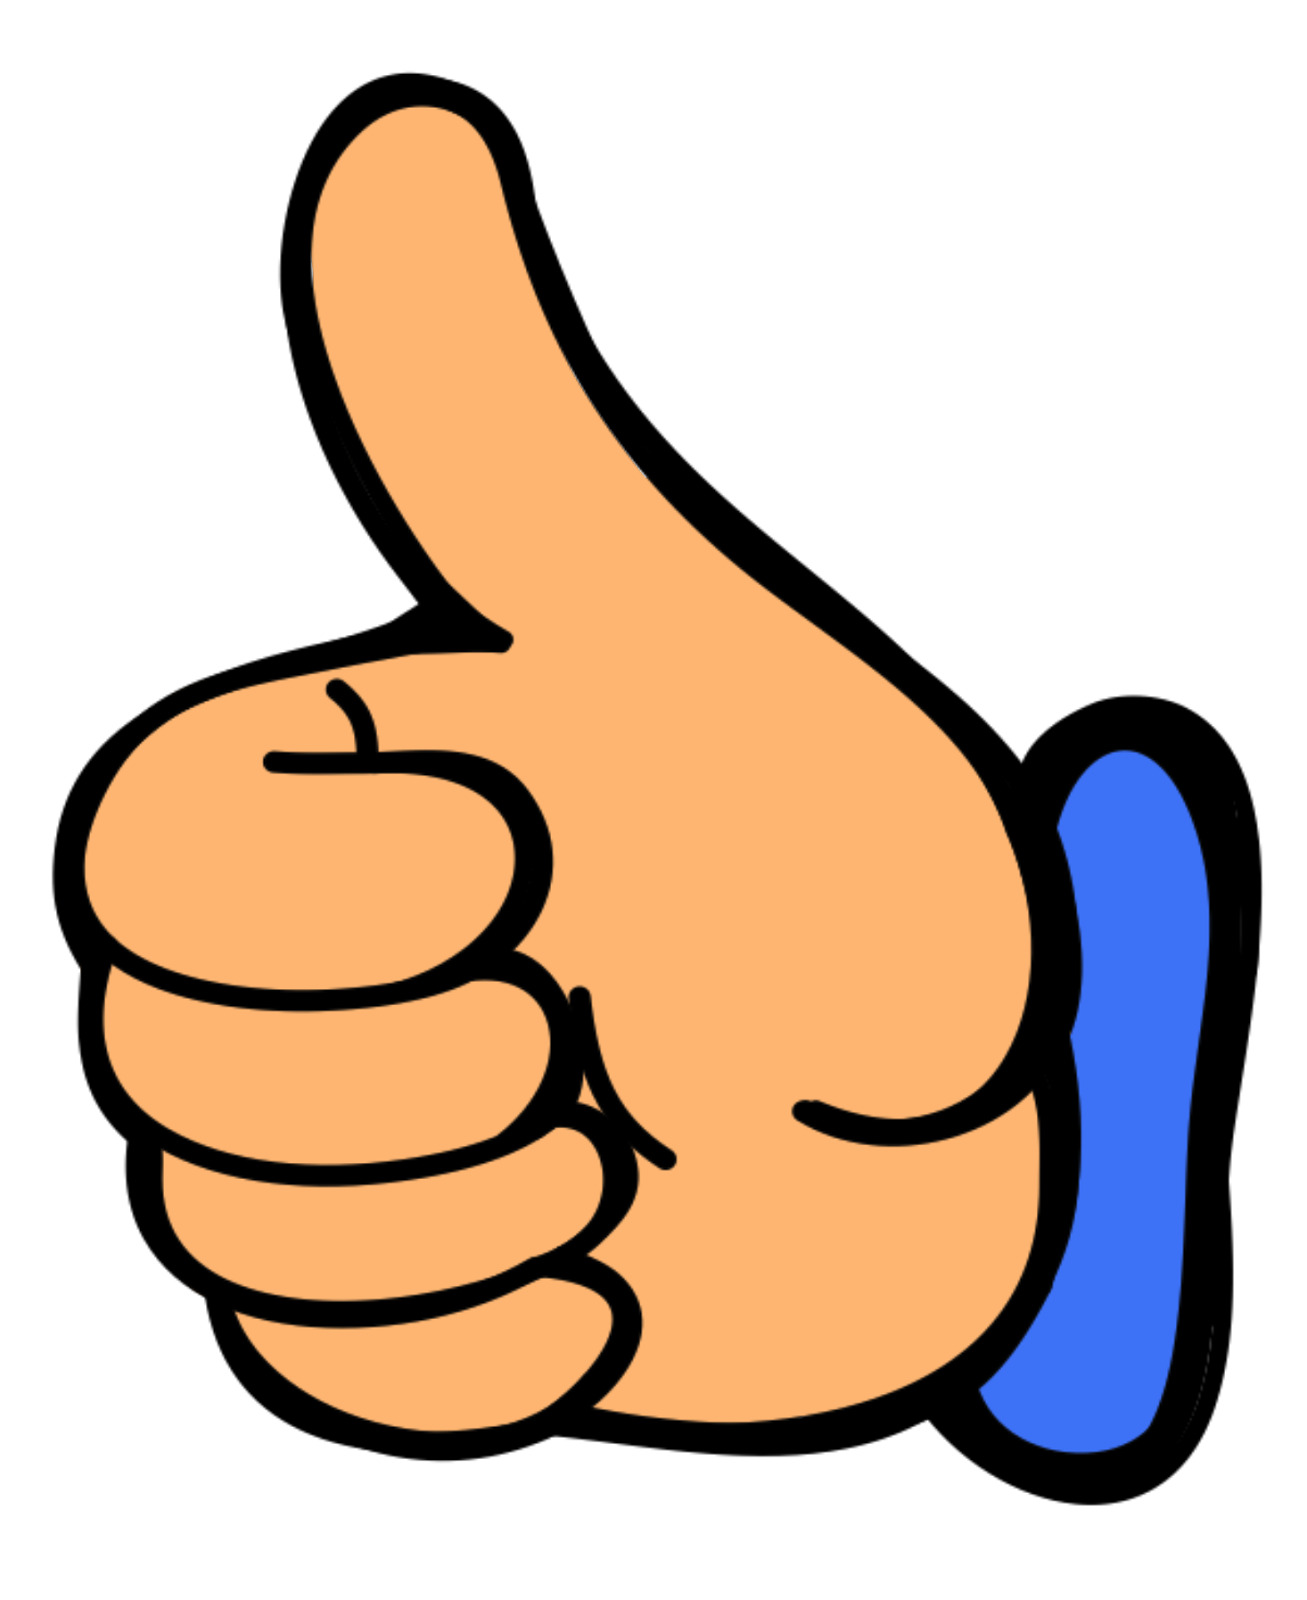 picture of a thumbs up